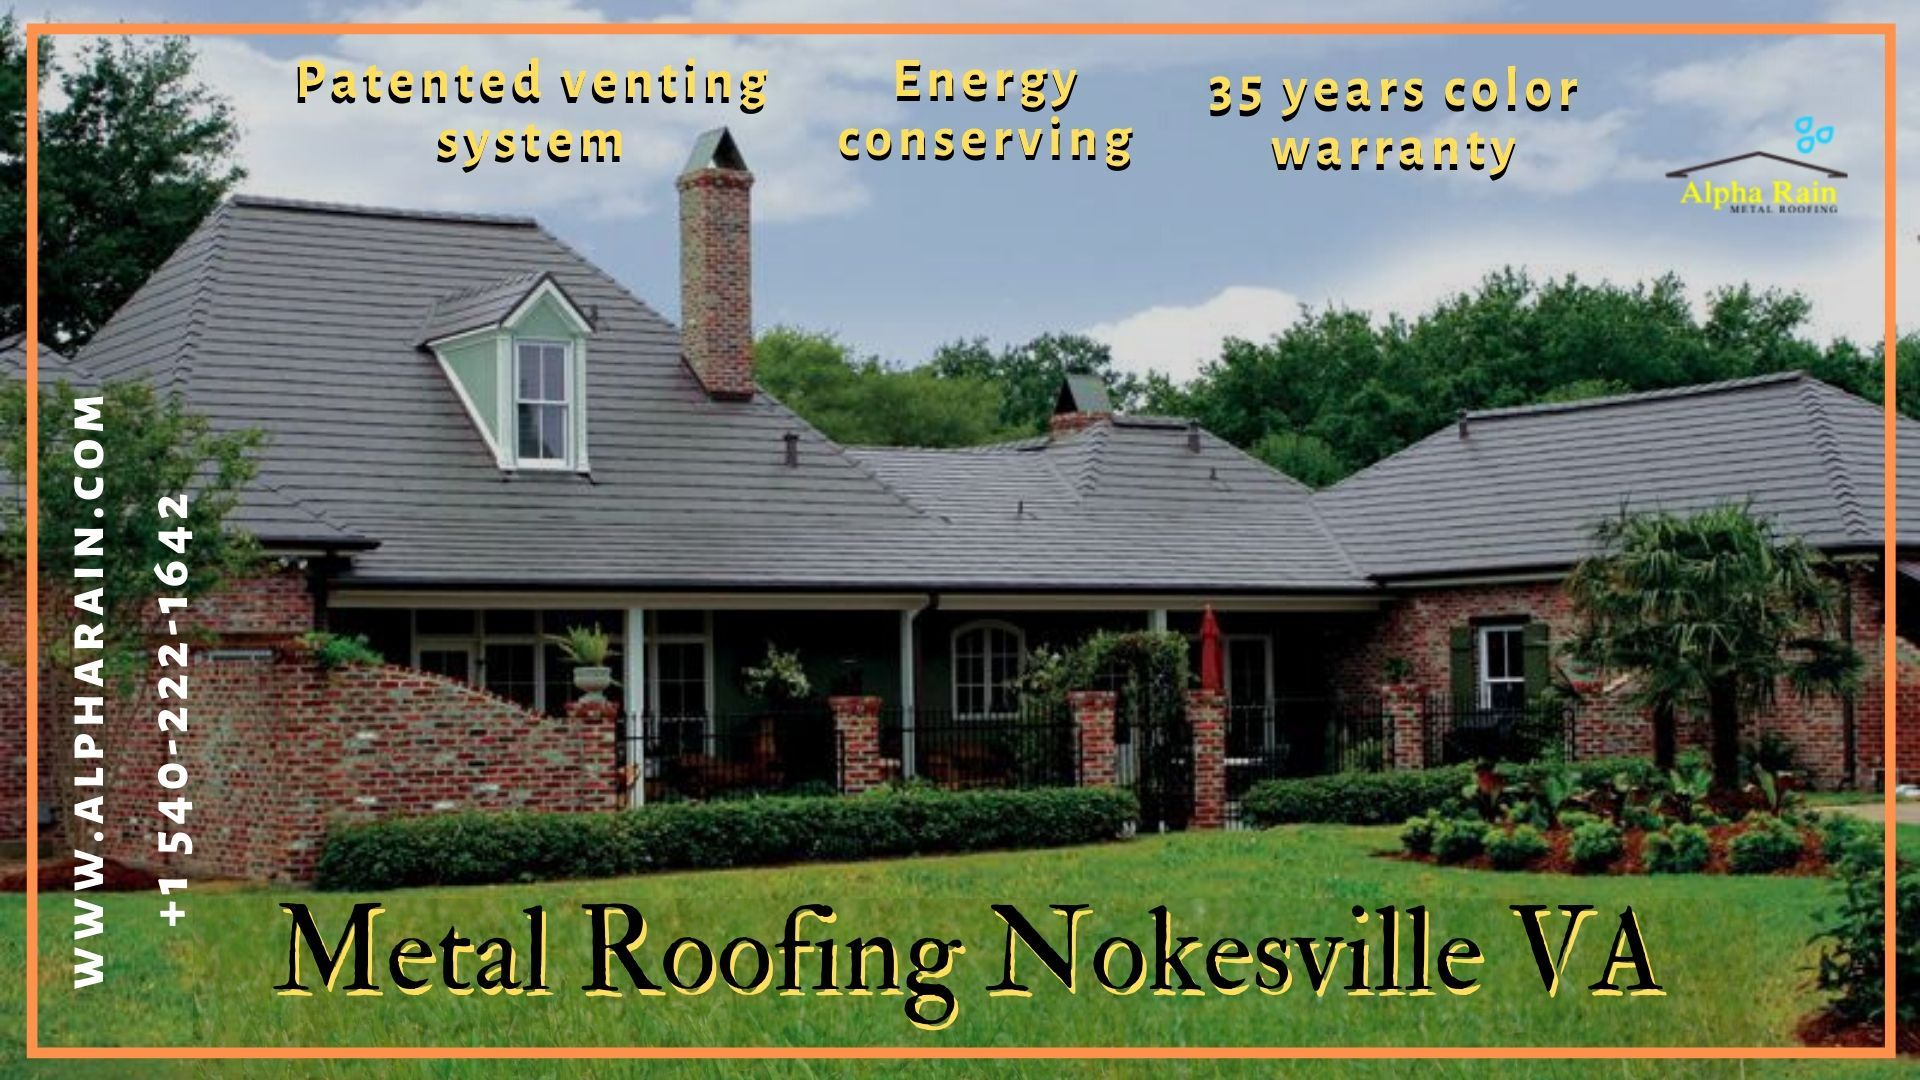 Therma Vent System In 2020 Residential Metal Roofing Metal Roof Metal Roofing Contractors